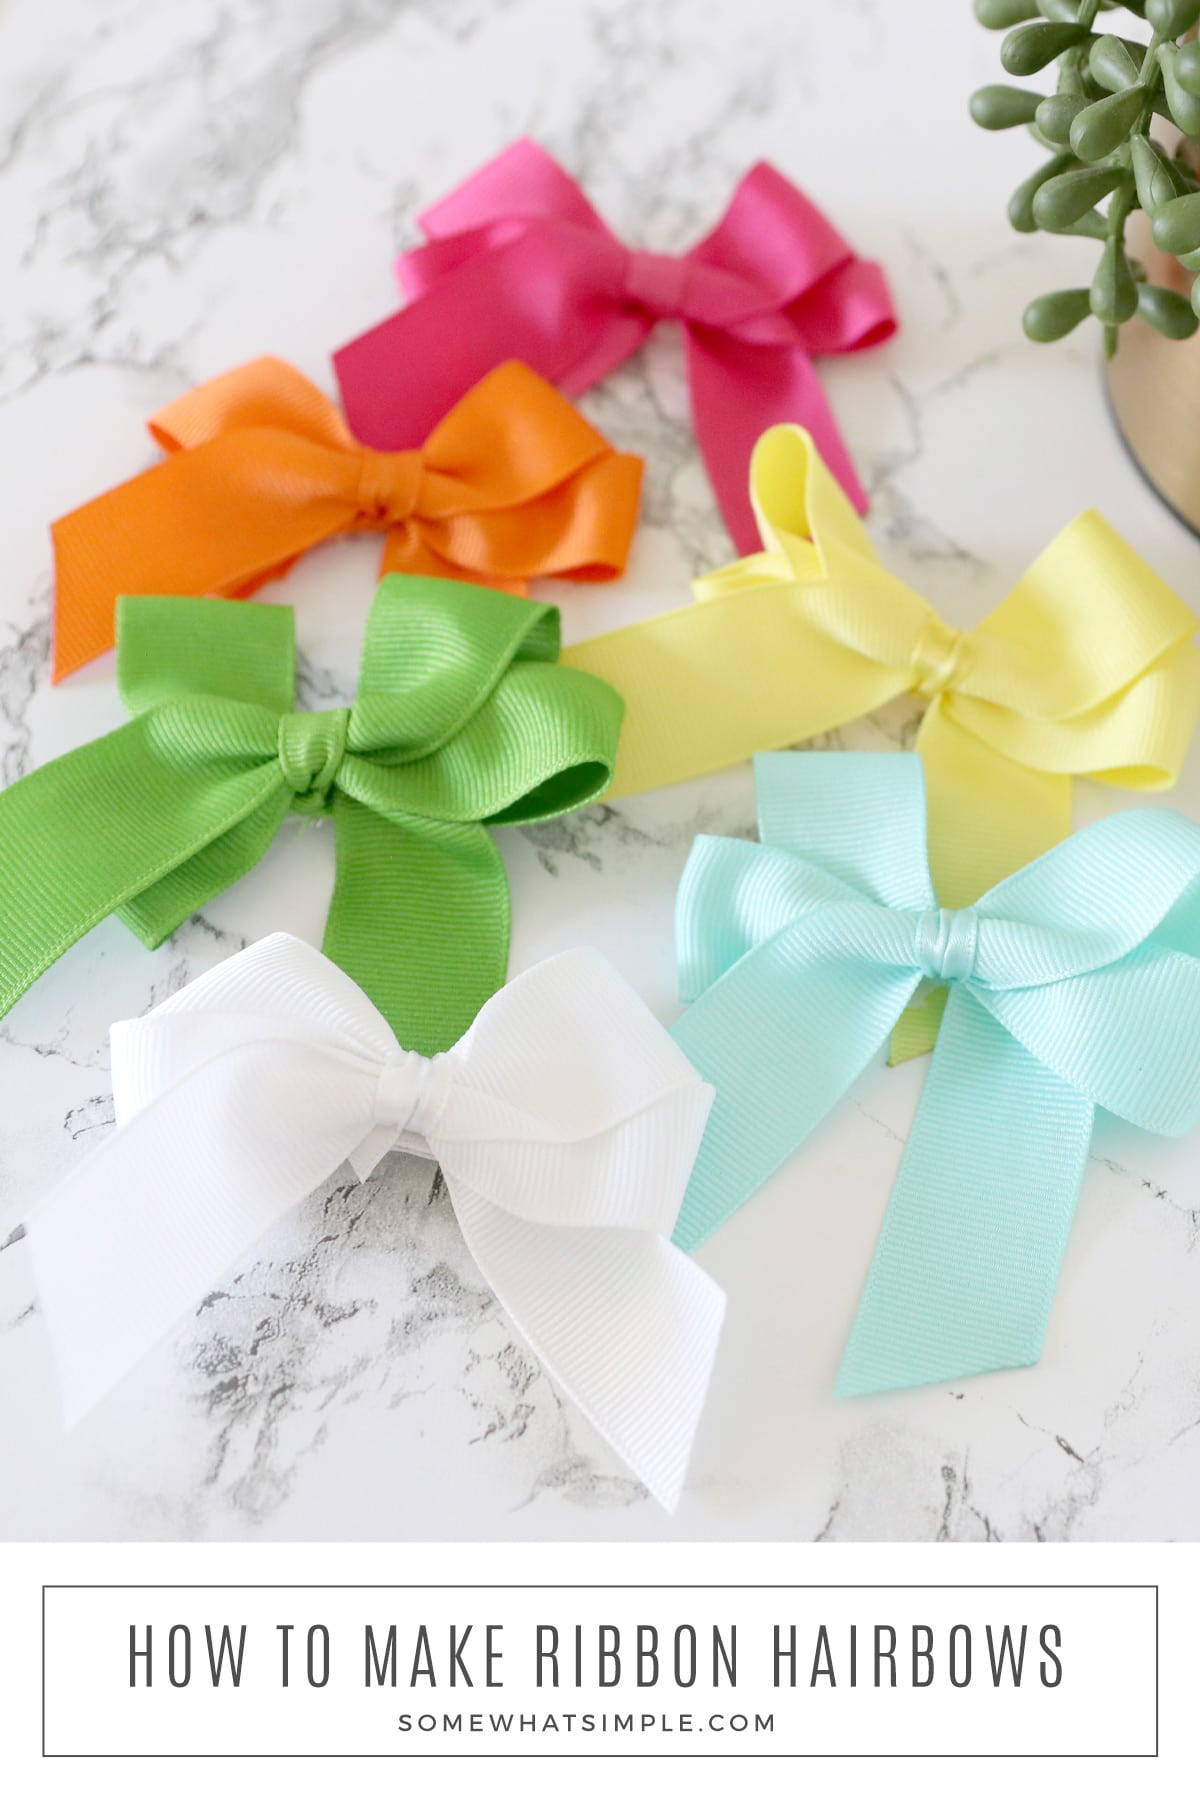 Learn how to make hair bows quickly and easily with our simple step-by-step picture tutorial! via @somewhatsimple